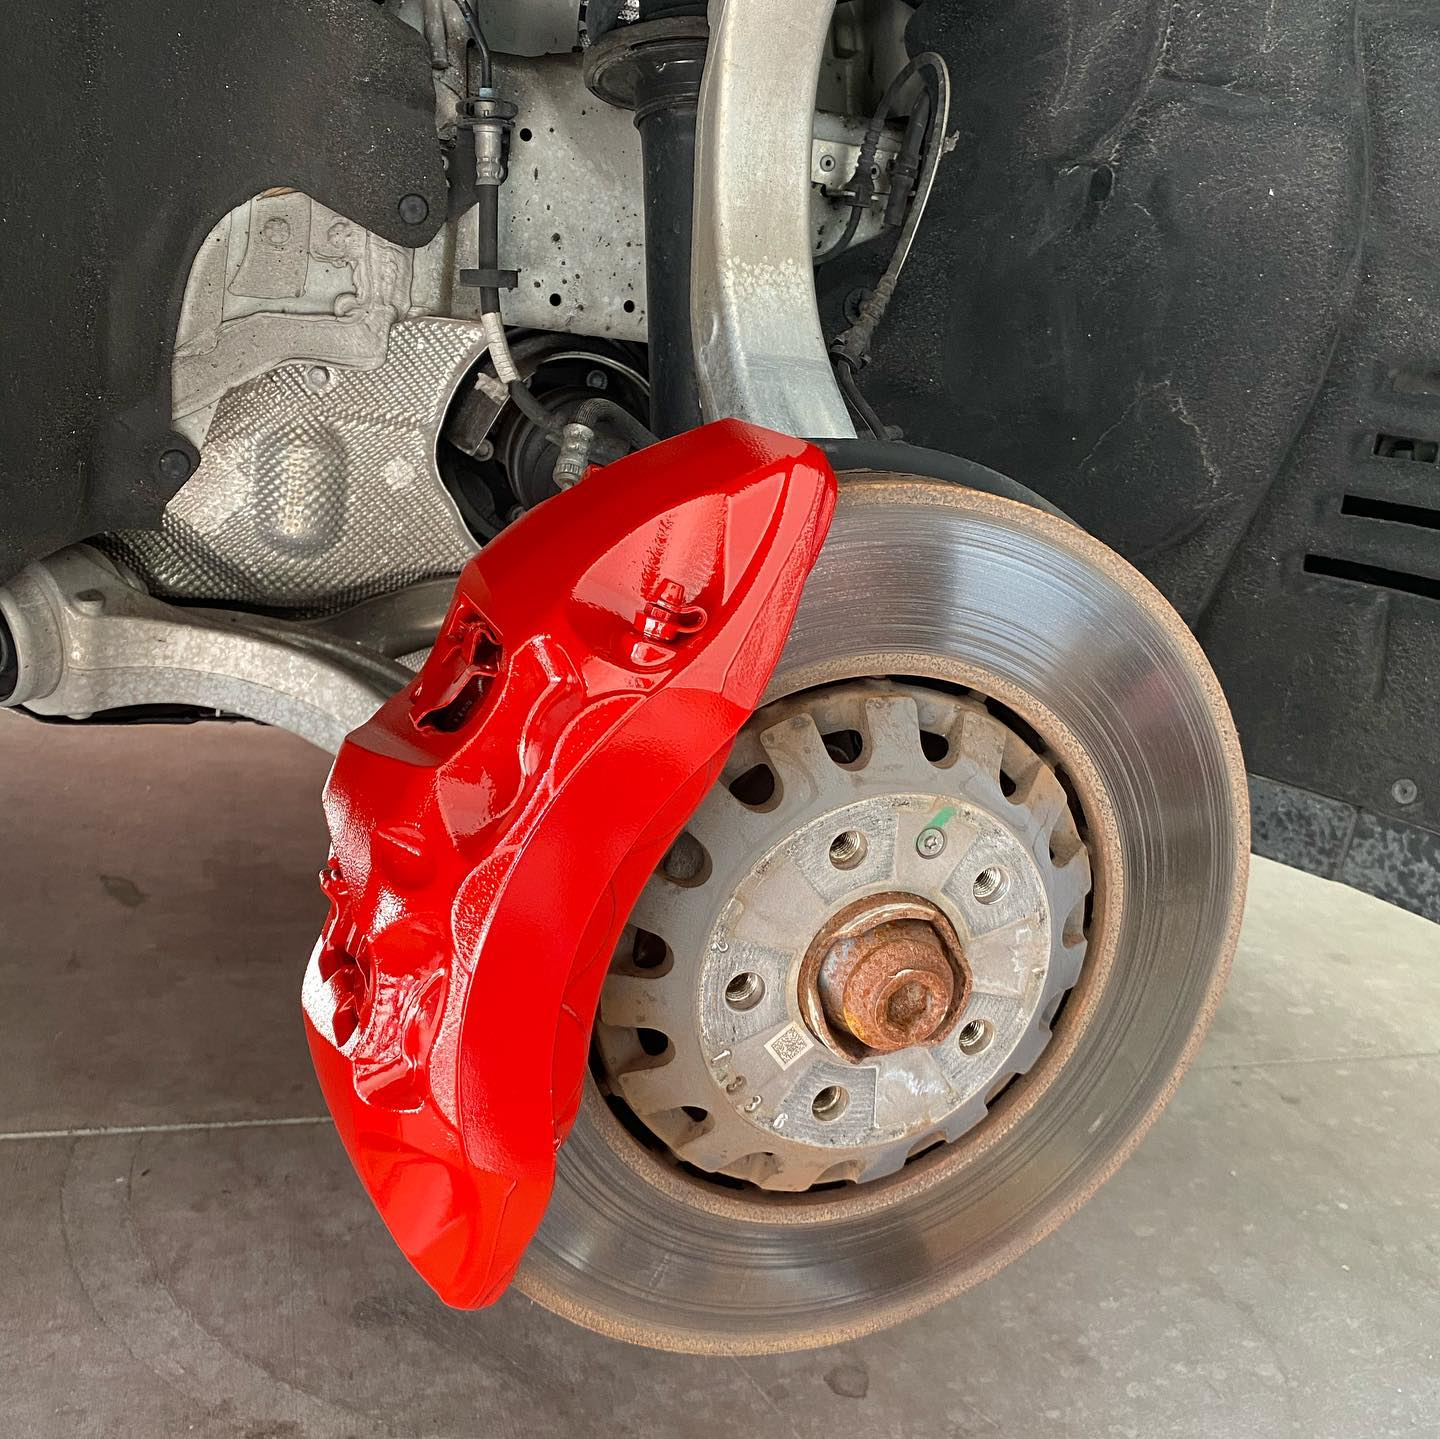 We paint brake calipers for Cars/SUVS